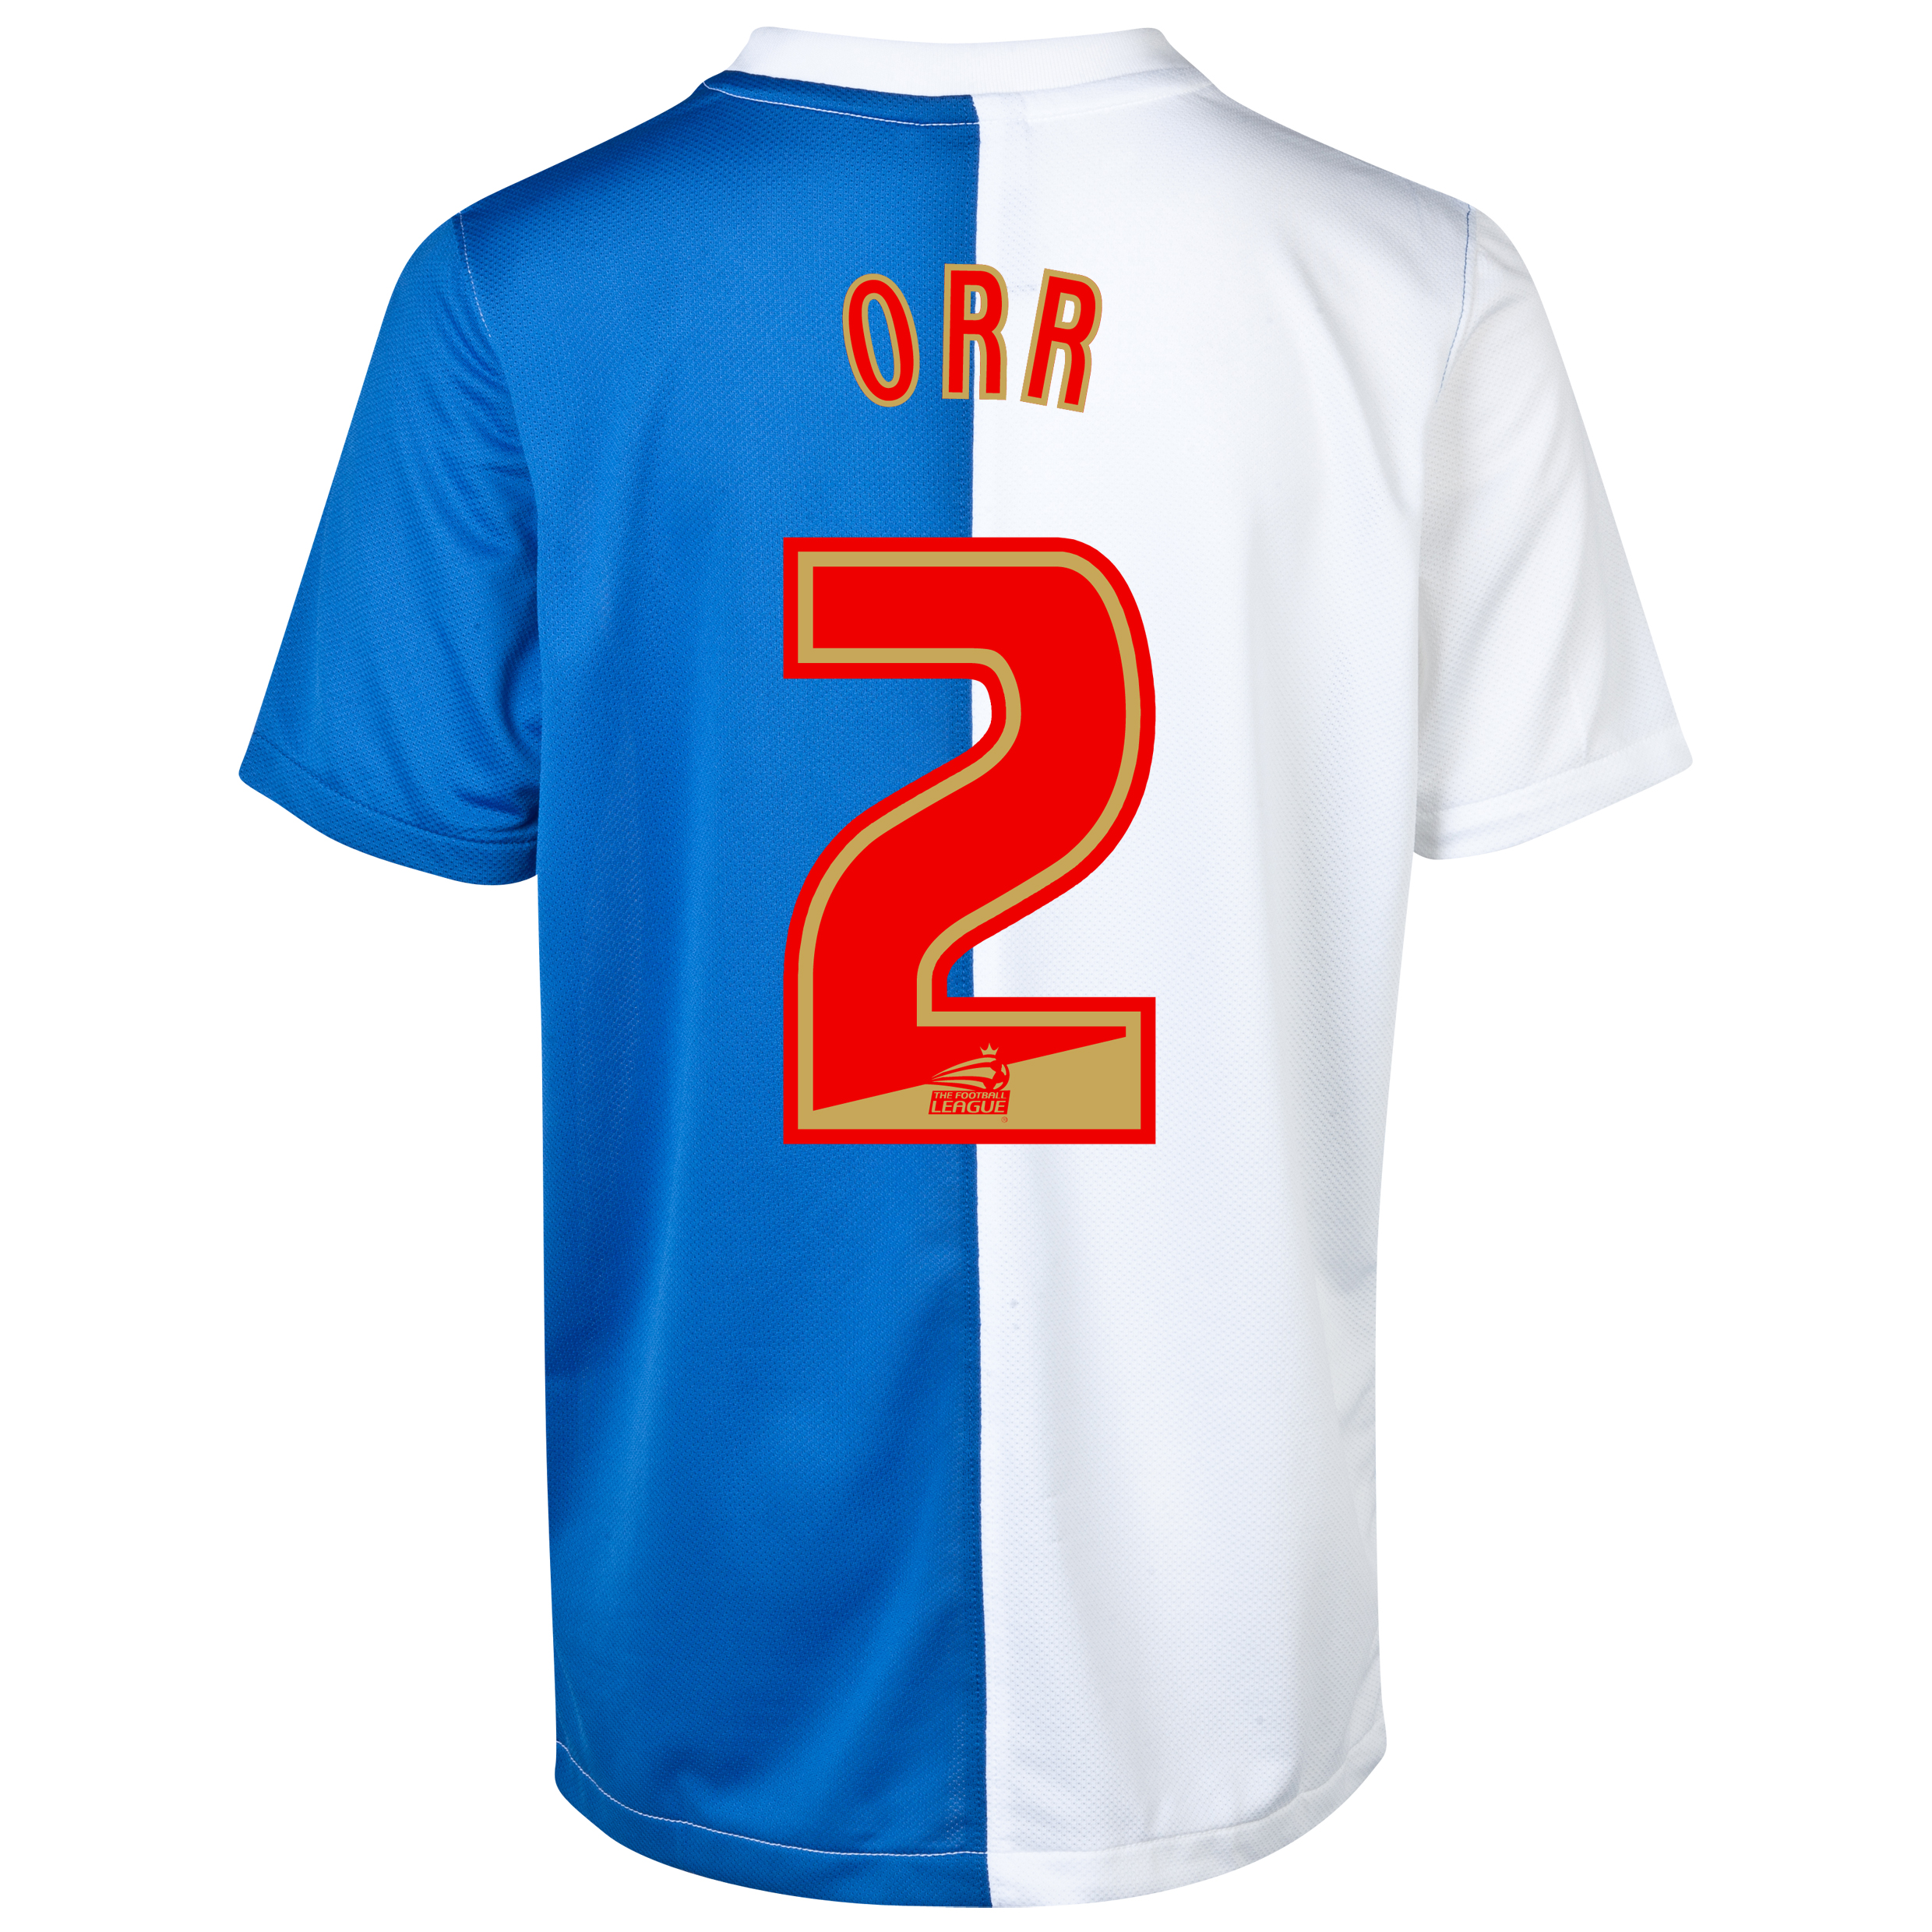 Blackburn Rovers Home Shirt 2013/14 with Orr 2 printing